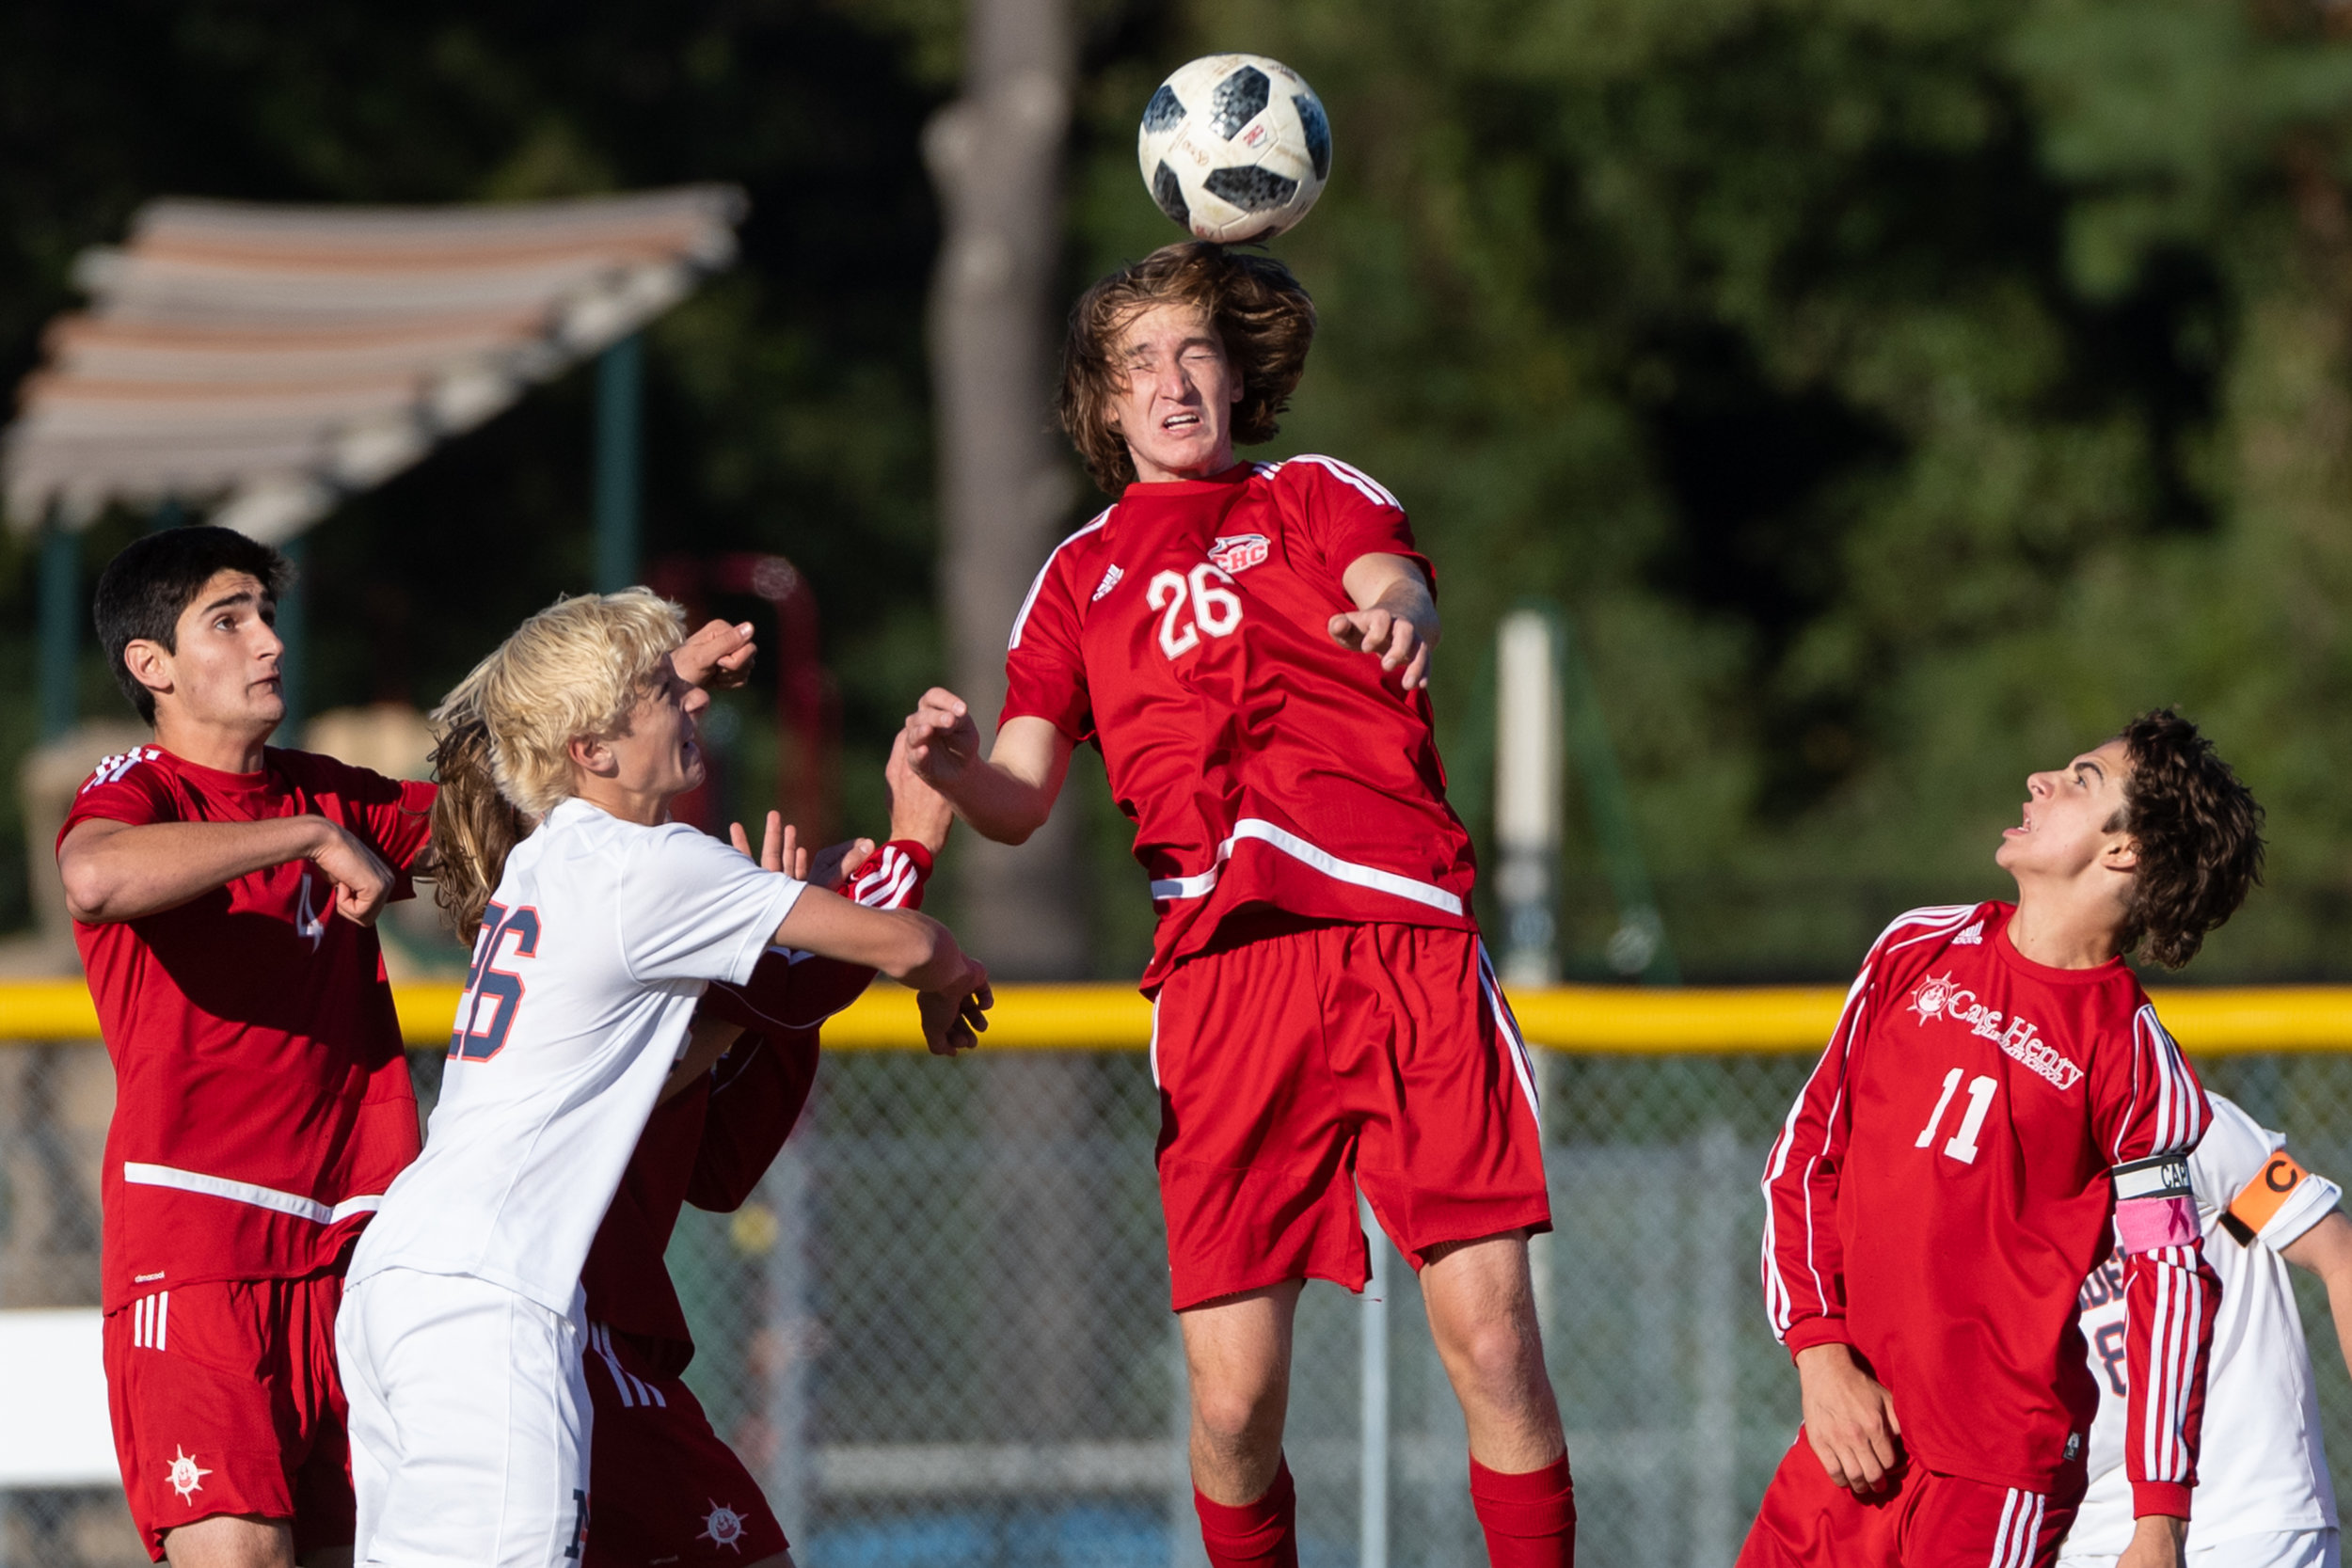 Boys Soccer: Norfolk Academy vs Cape Henry Collegiate